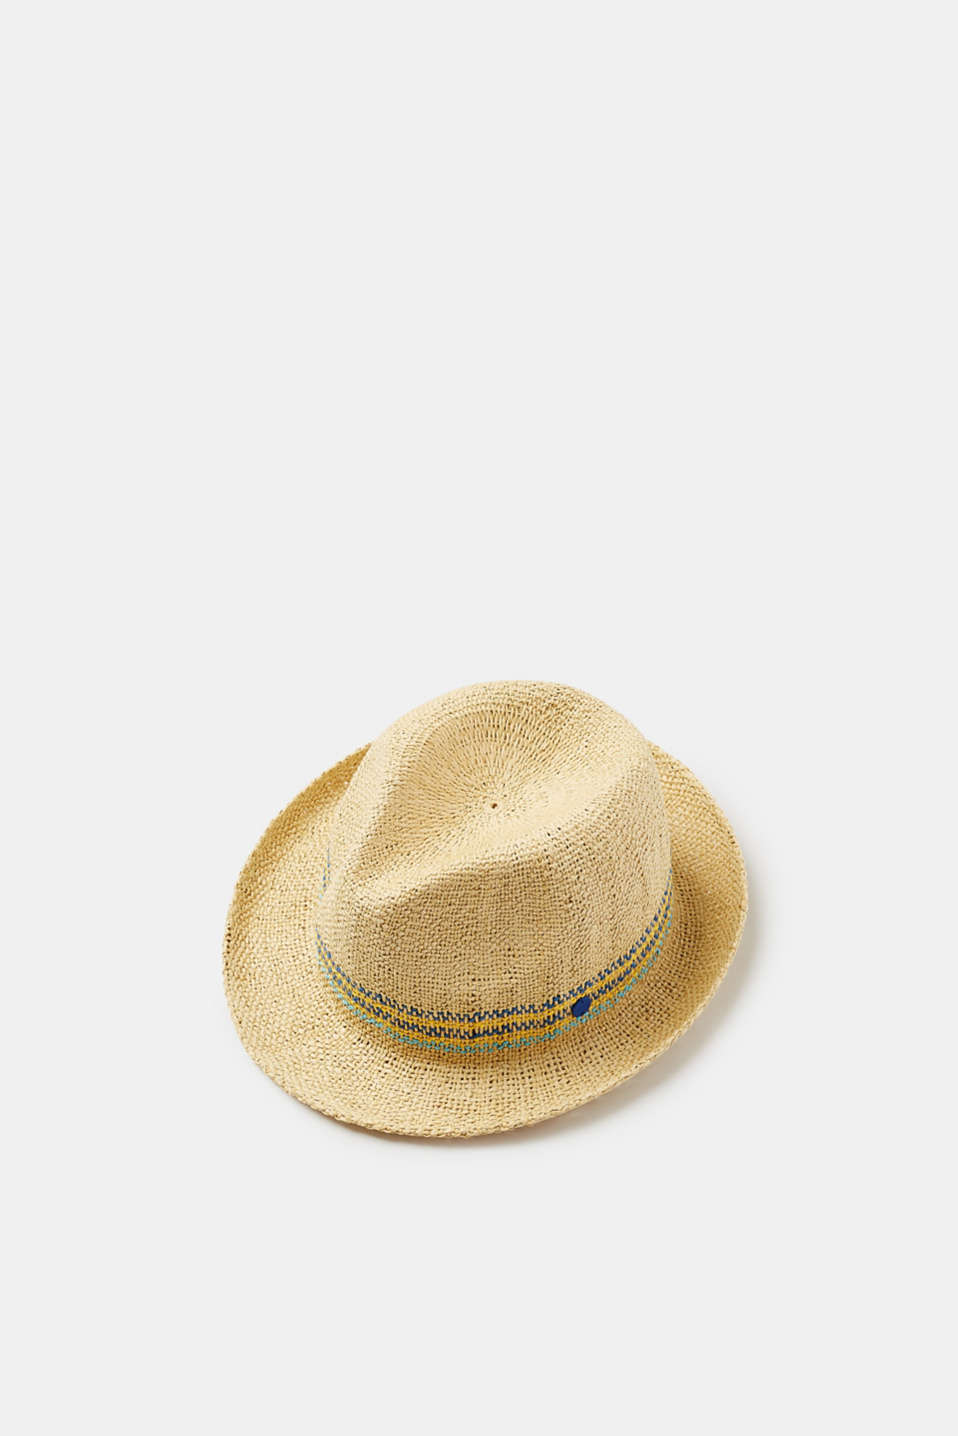 Super airy with decorative textured stripes - this lightweight straw hat fascinates with the sophisticated integration of colourful braiding.